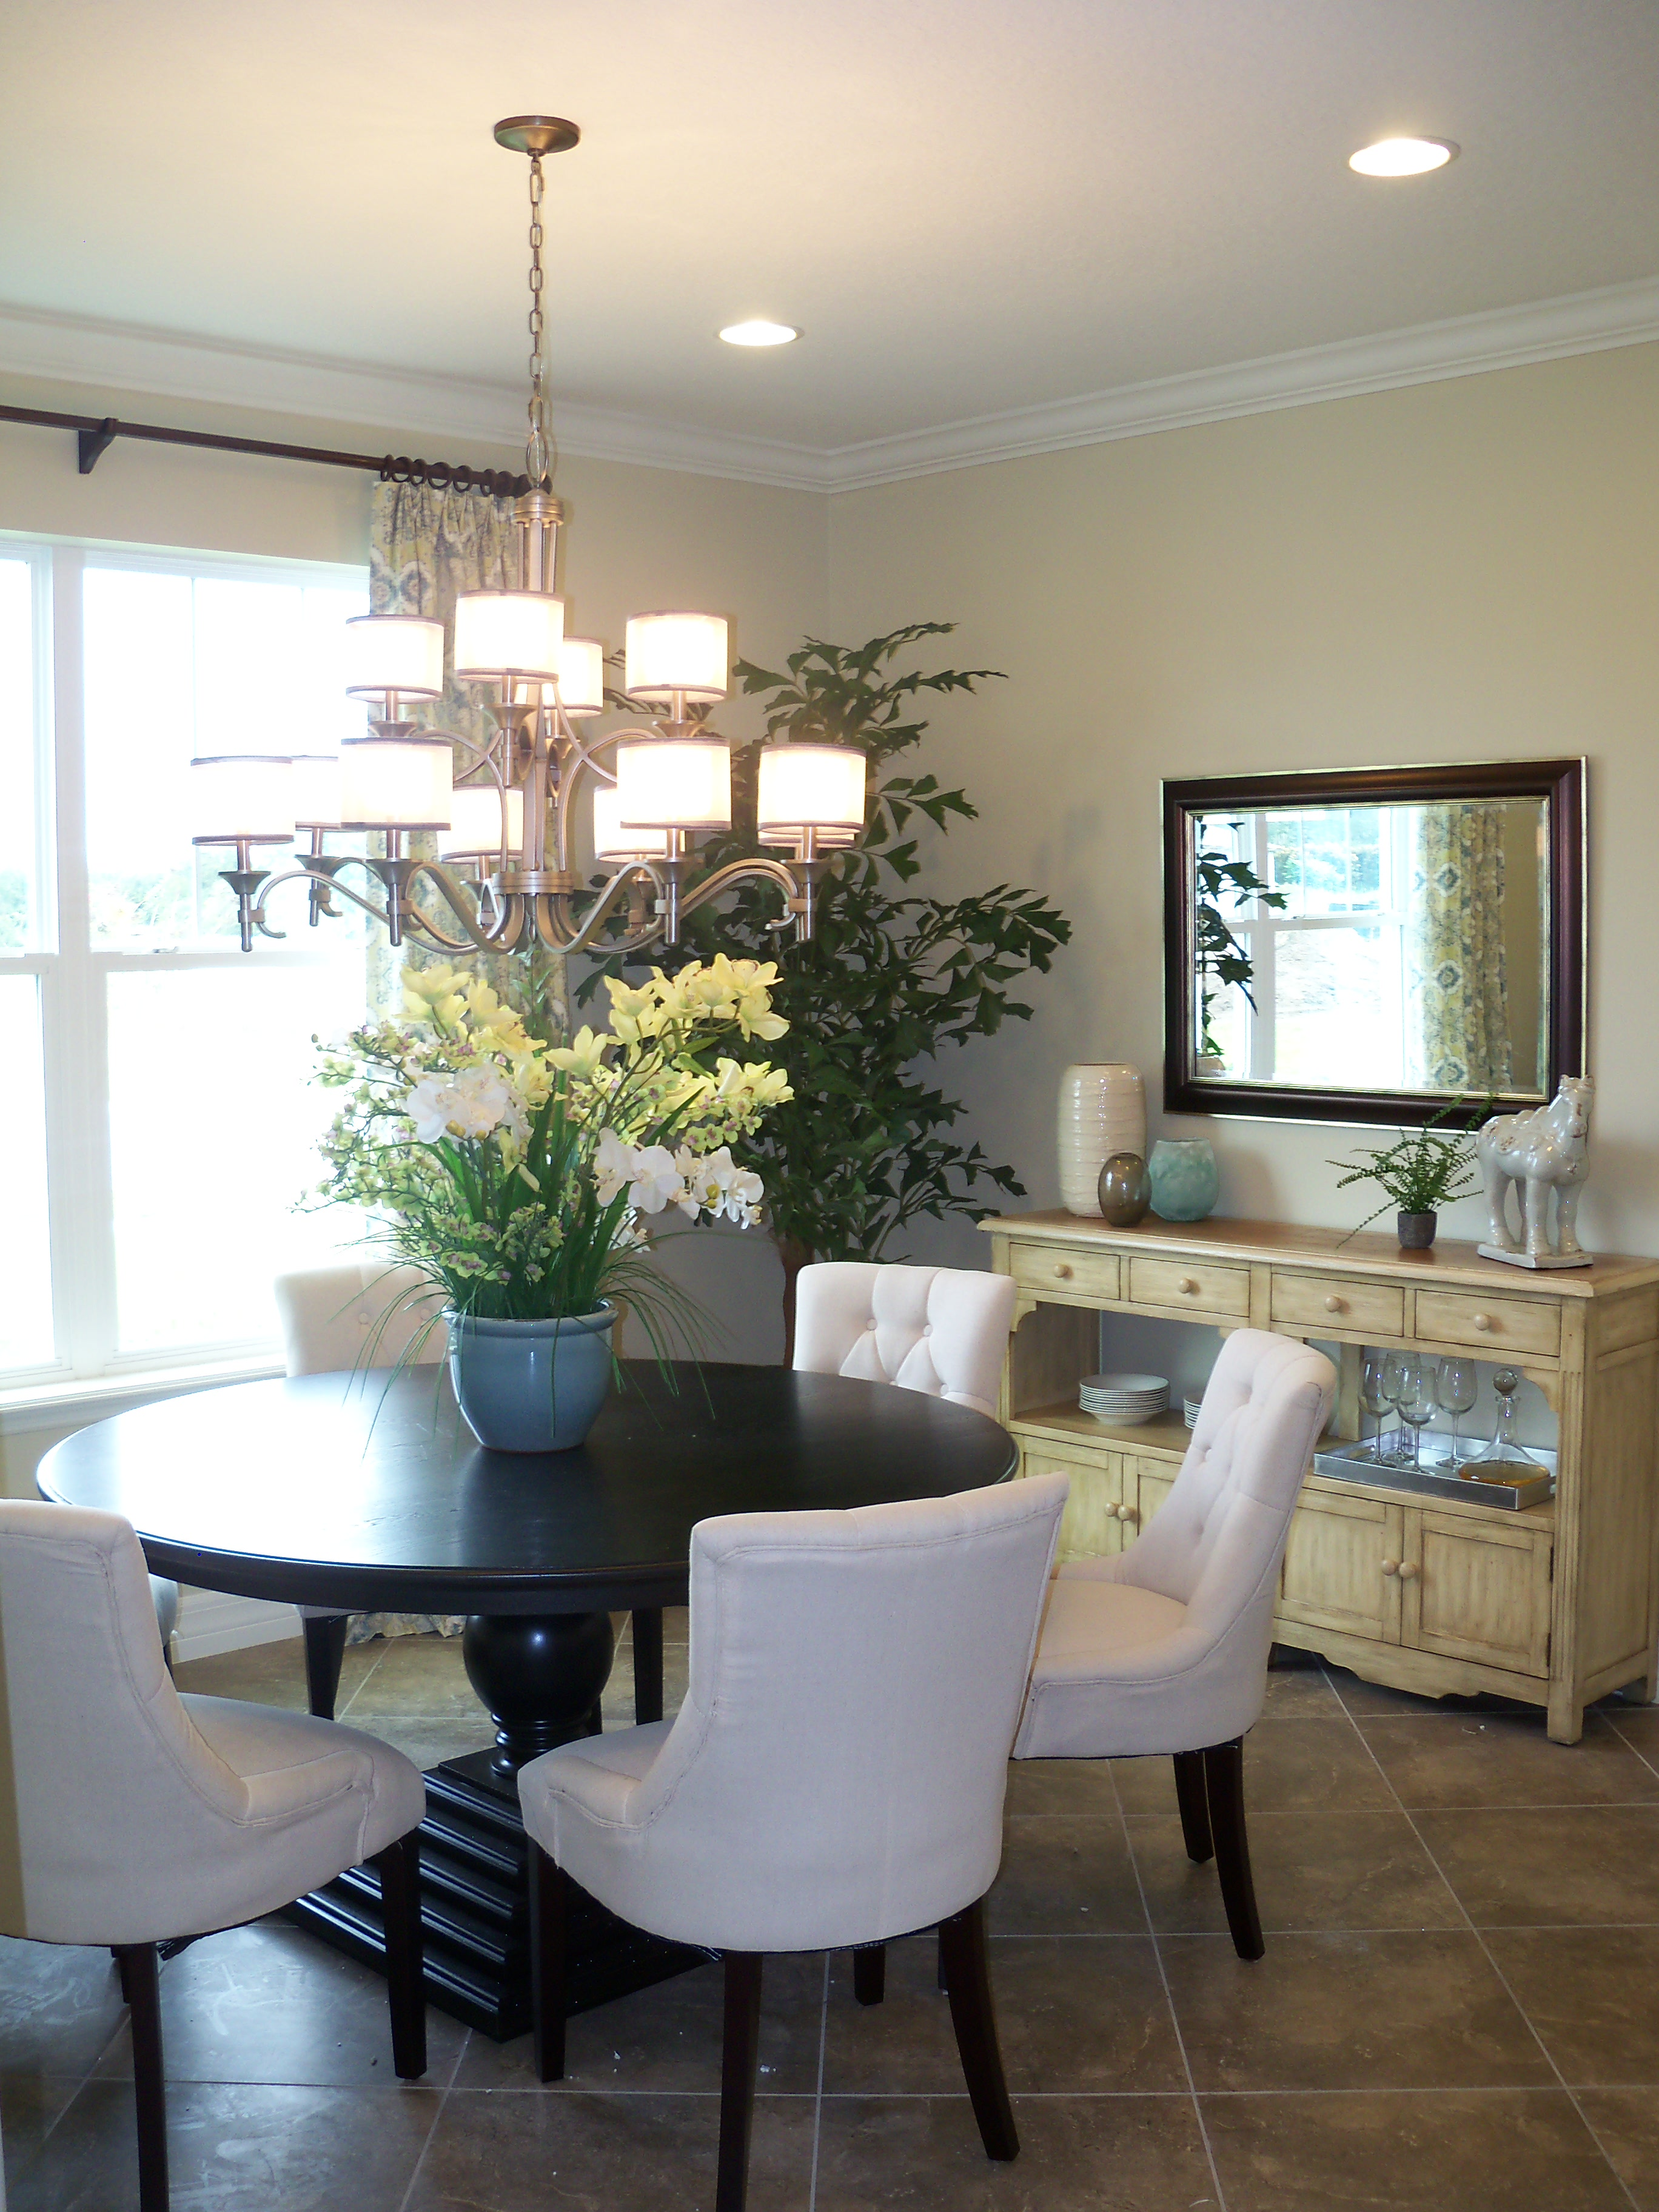 the kaya model wins the production home grand in 2014 parade of the formal dining by beasley henley interior design